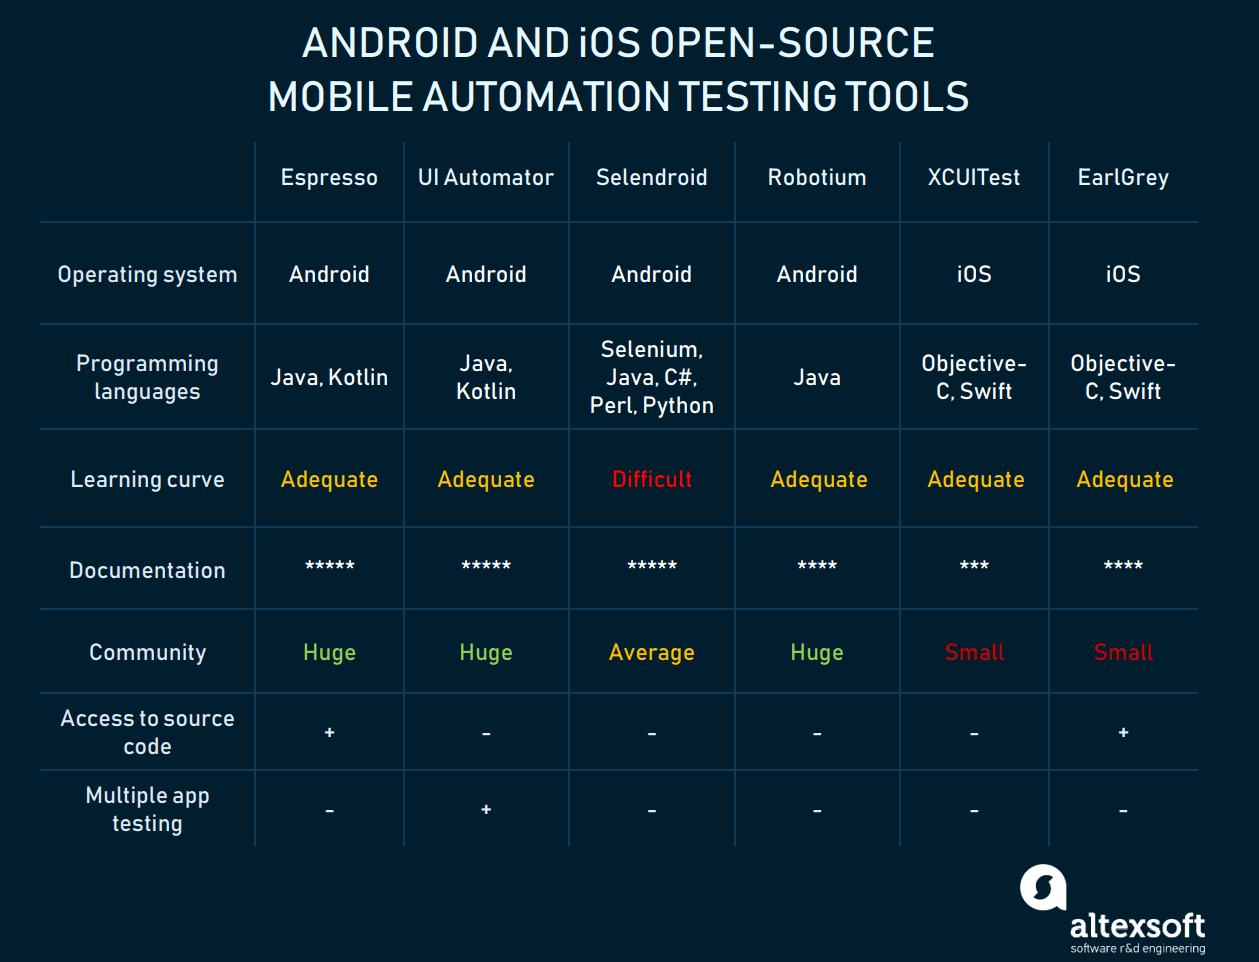 Android and iOS open-source testing tools